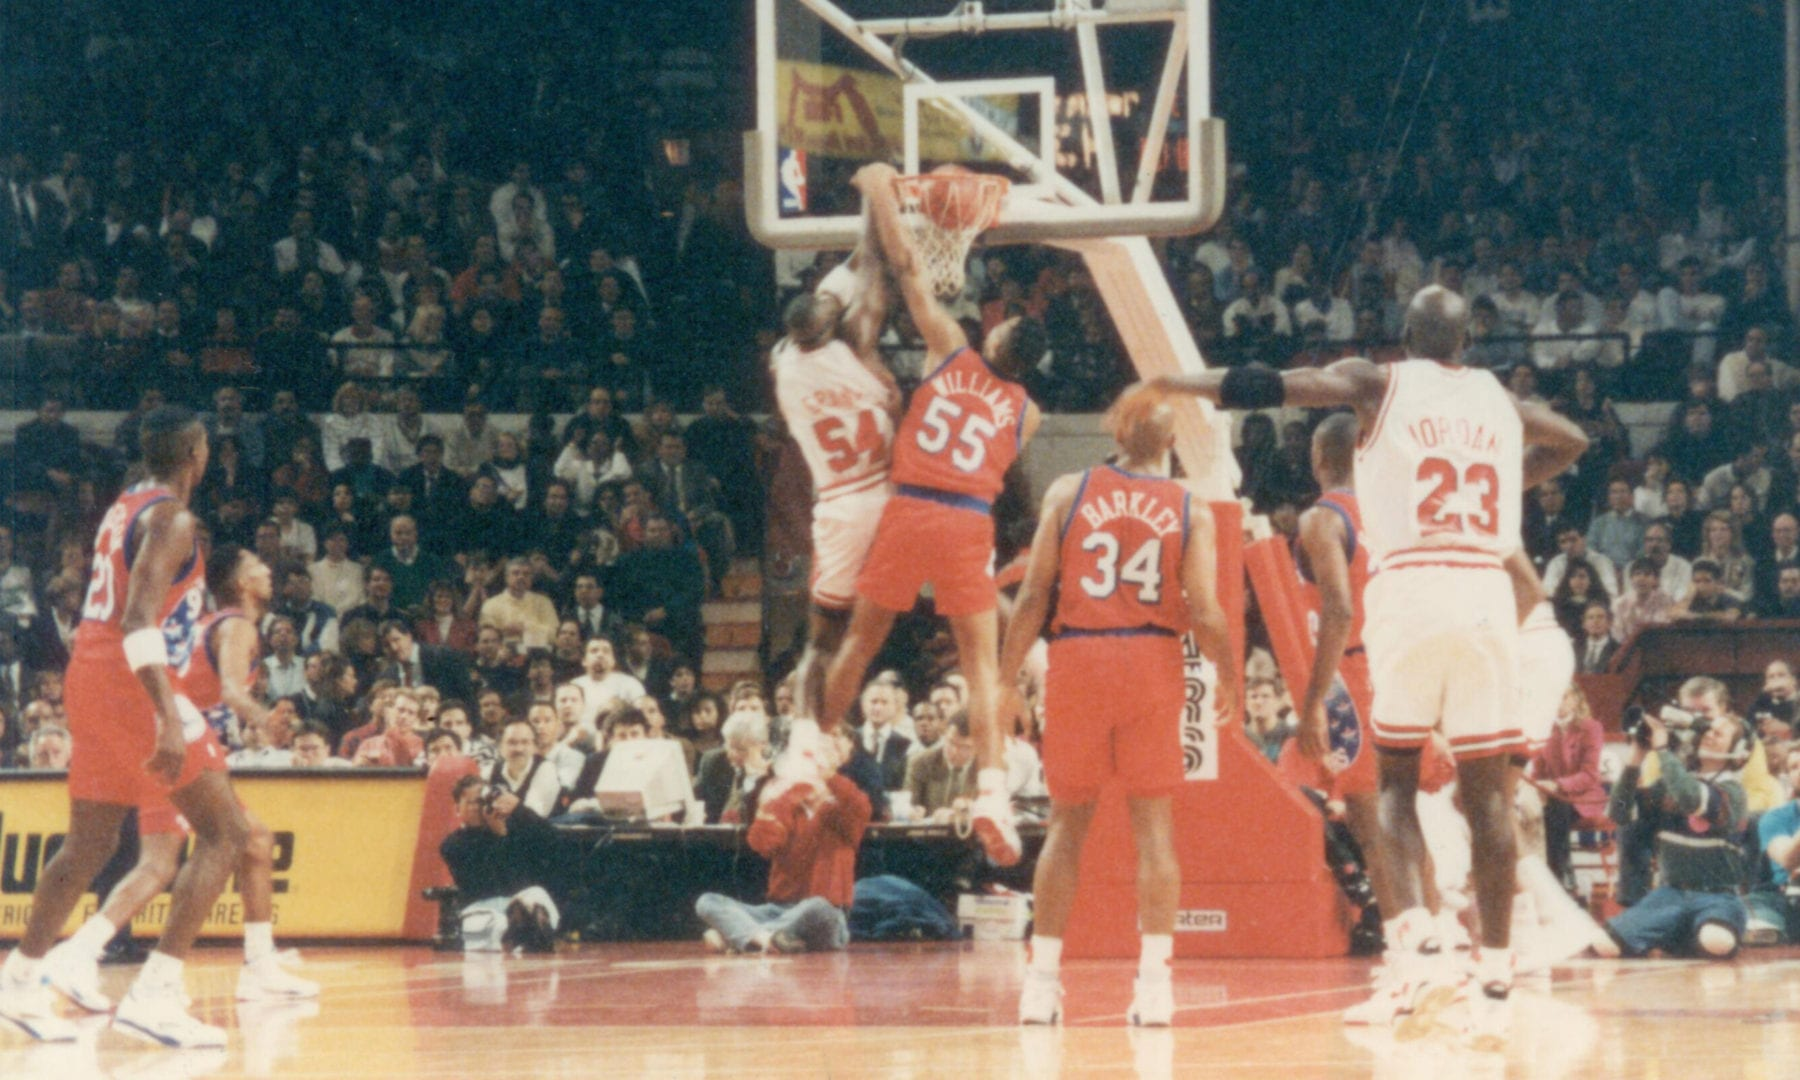 Horace Grant doing a dunk